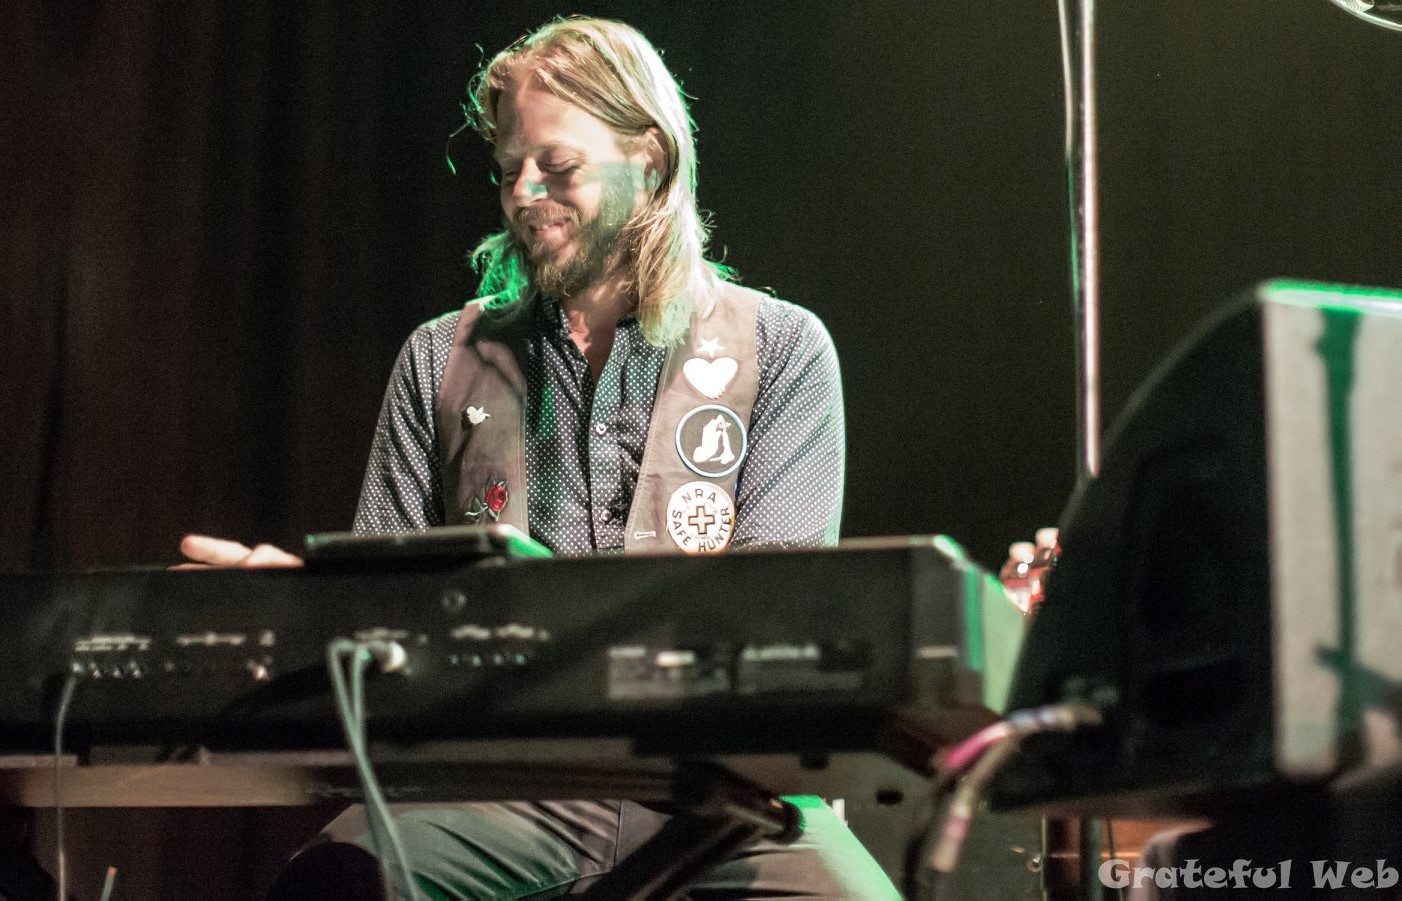 Marco Benevento | Joe Russo's Almost Dead